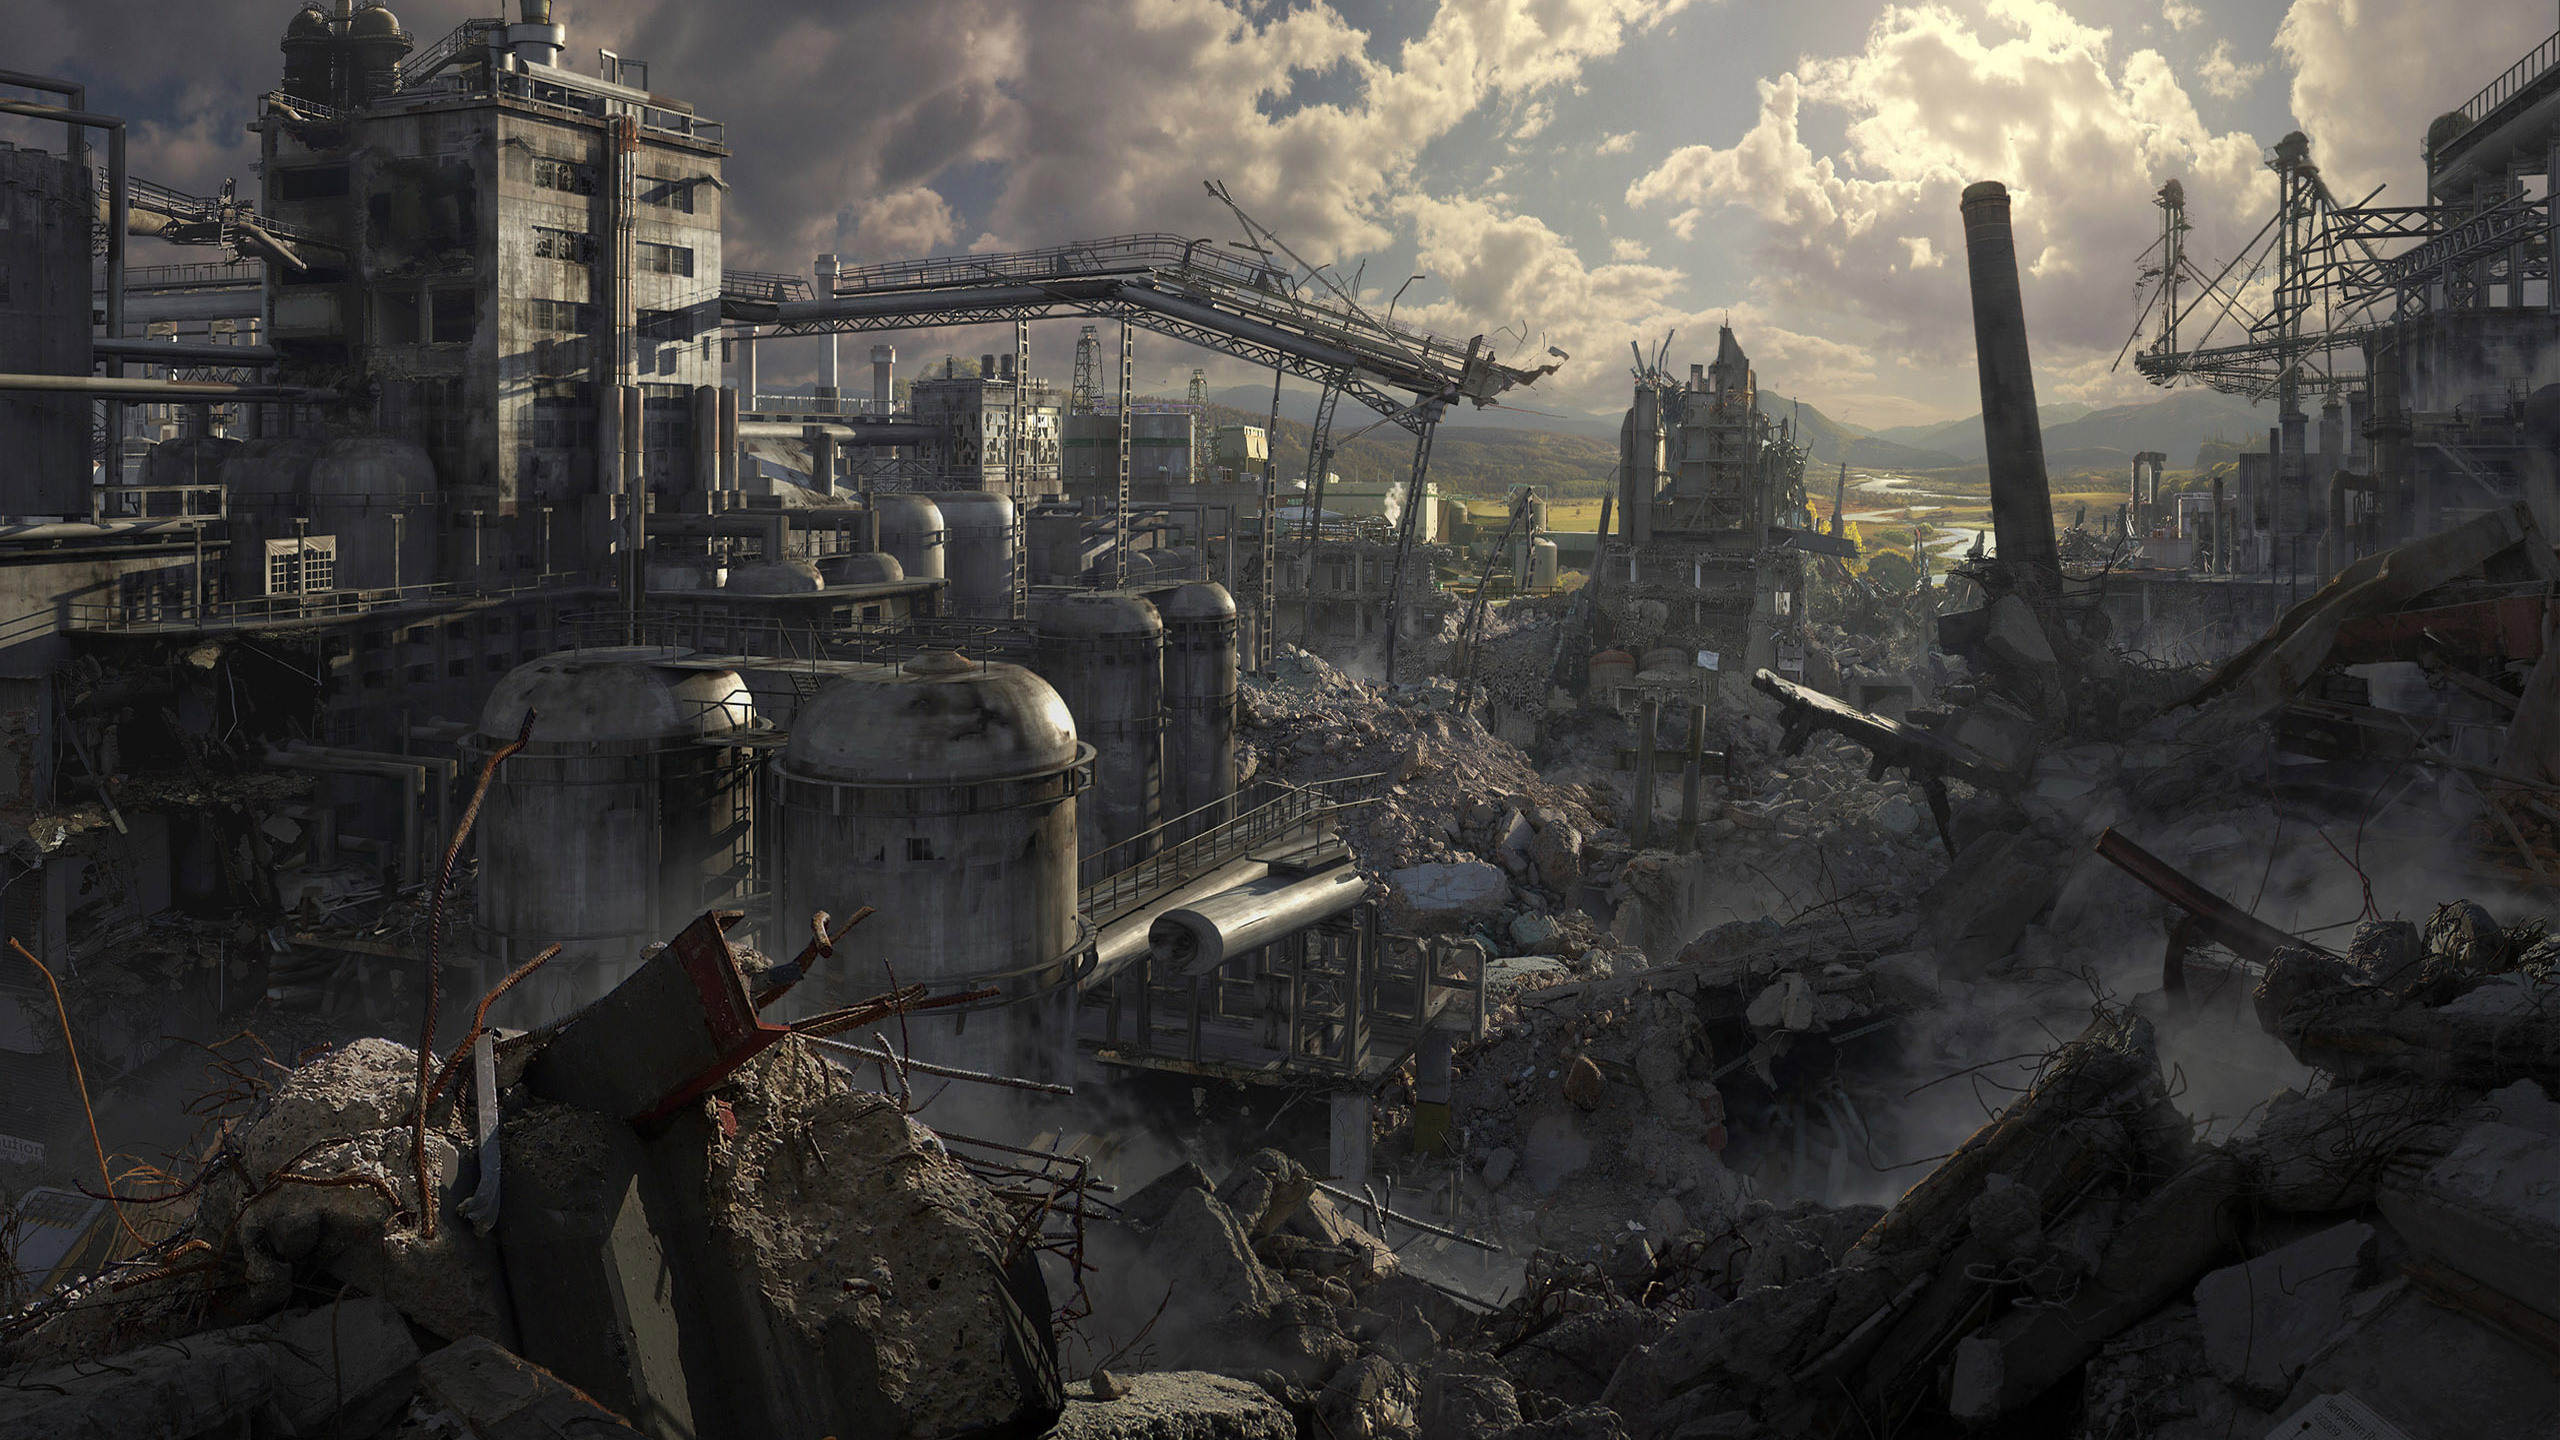 apocalyptic hd wallpaper 2560x1440 - photo #9